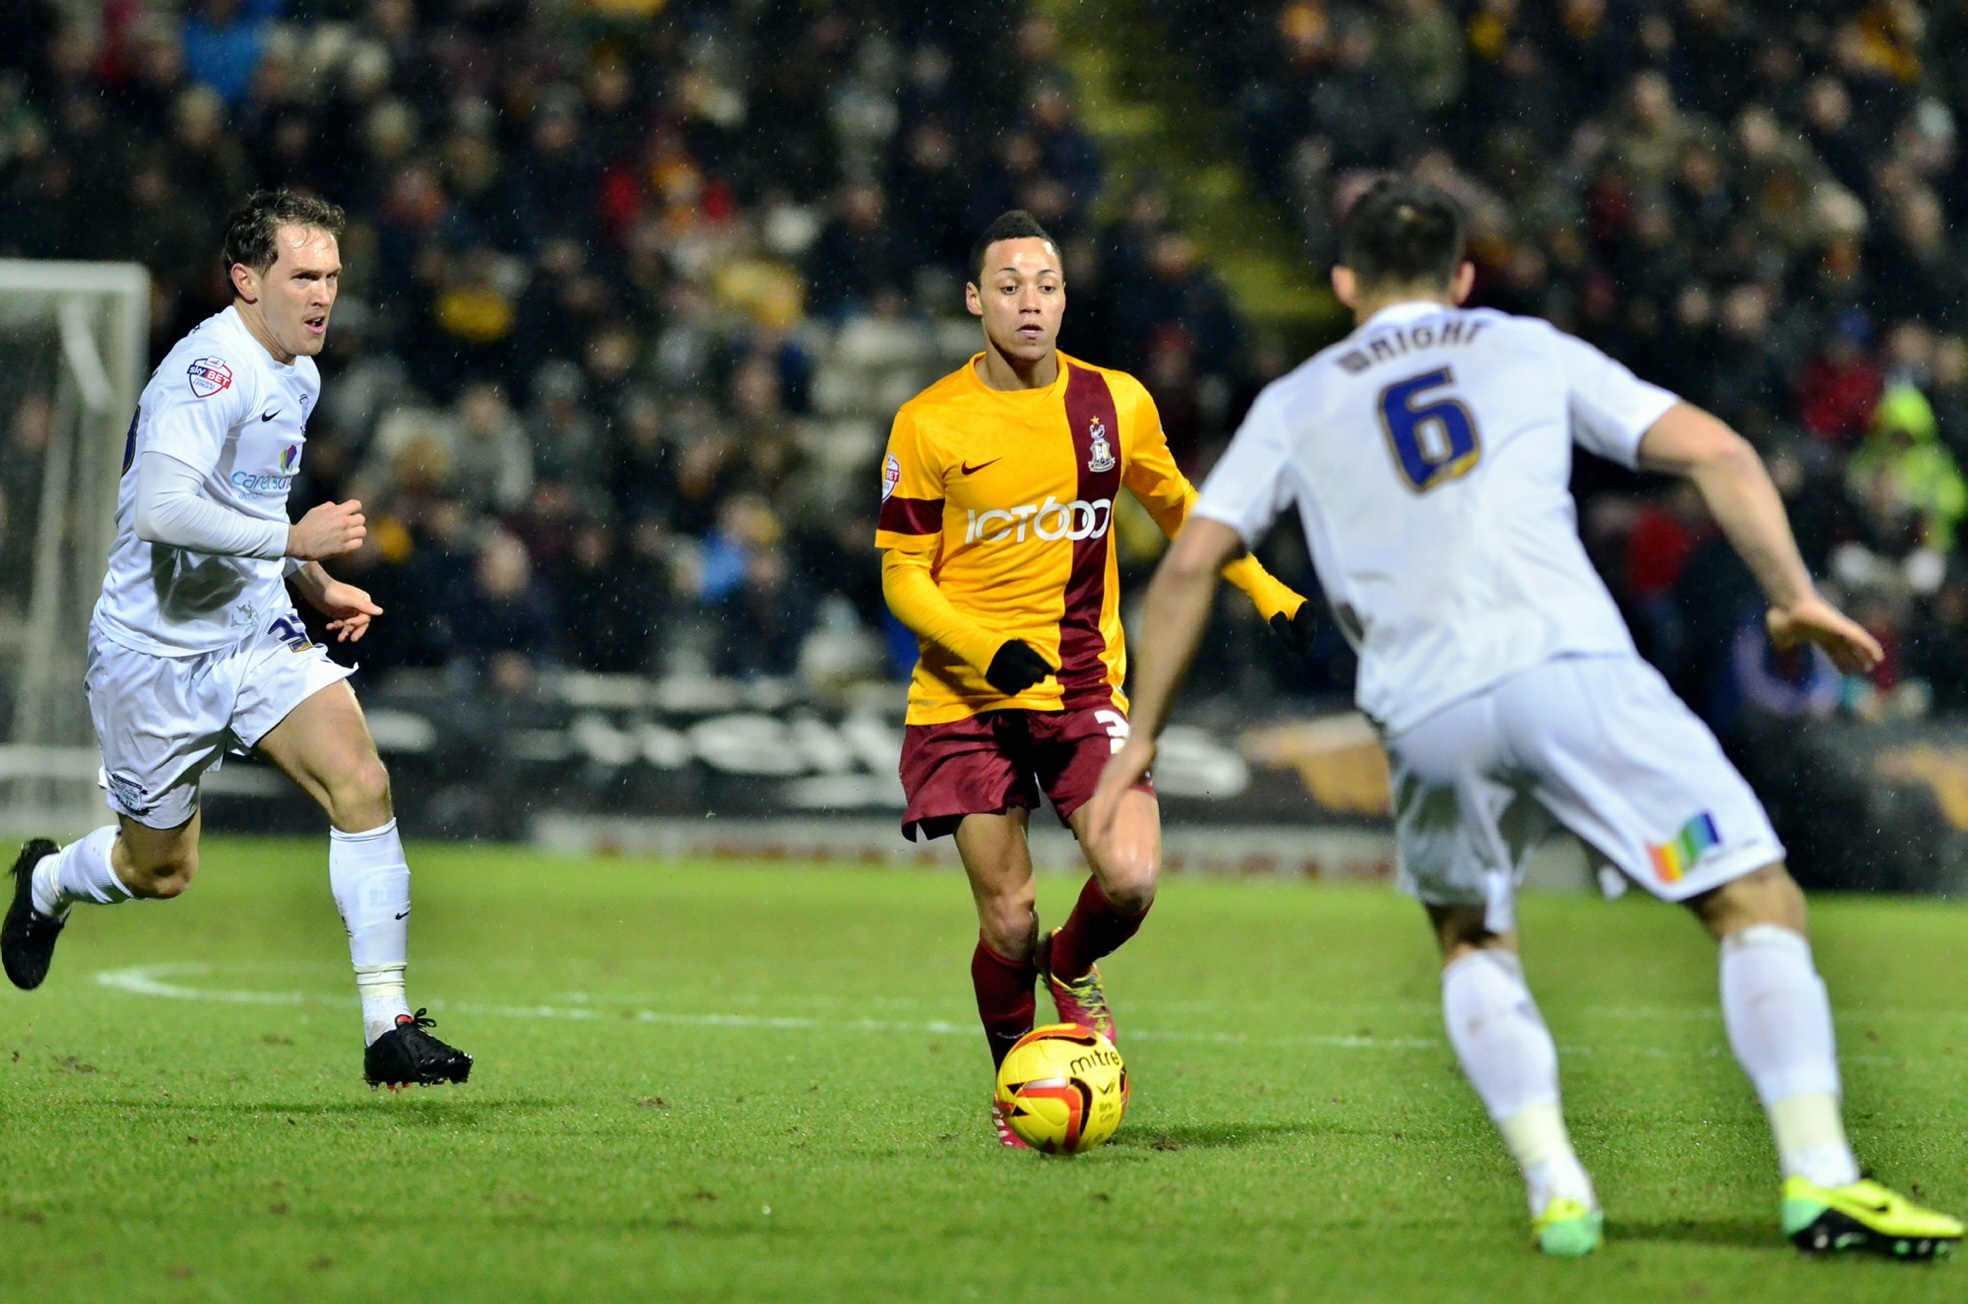 Davies delivers Bradford City clean sheet after referee takes centre stage